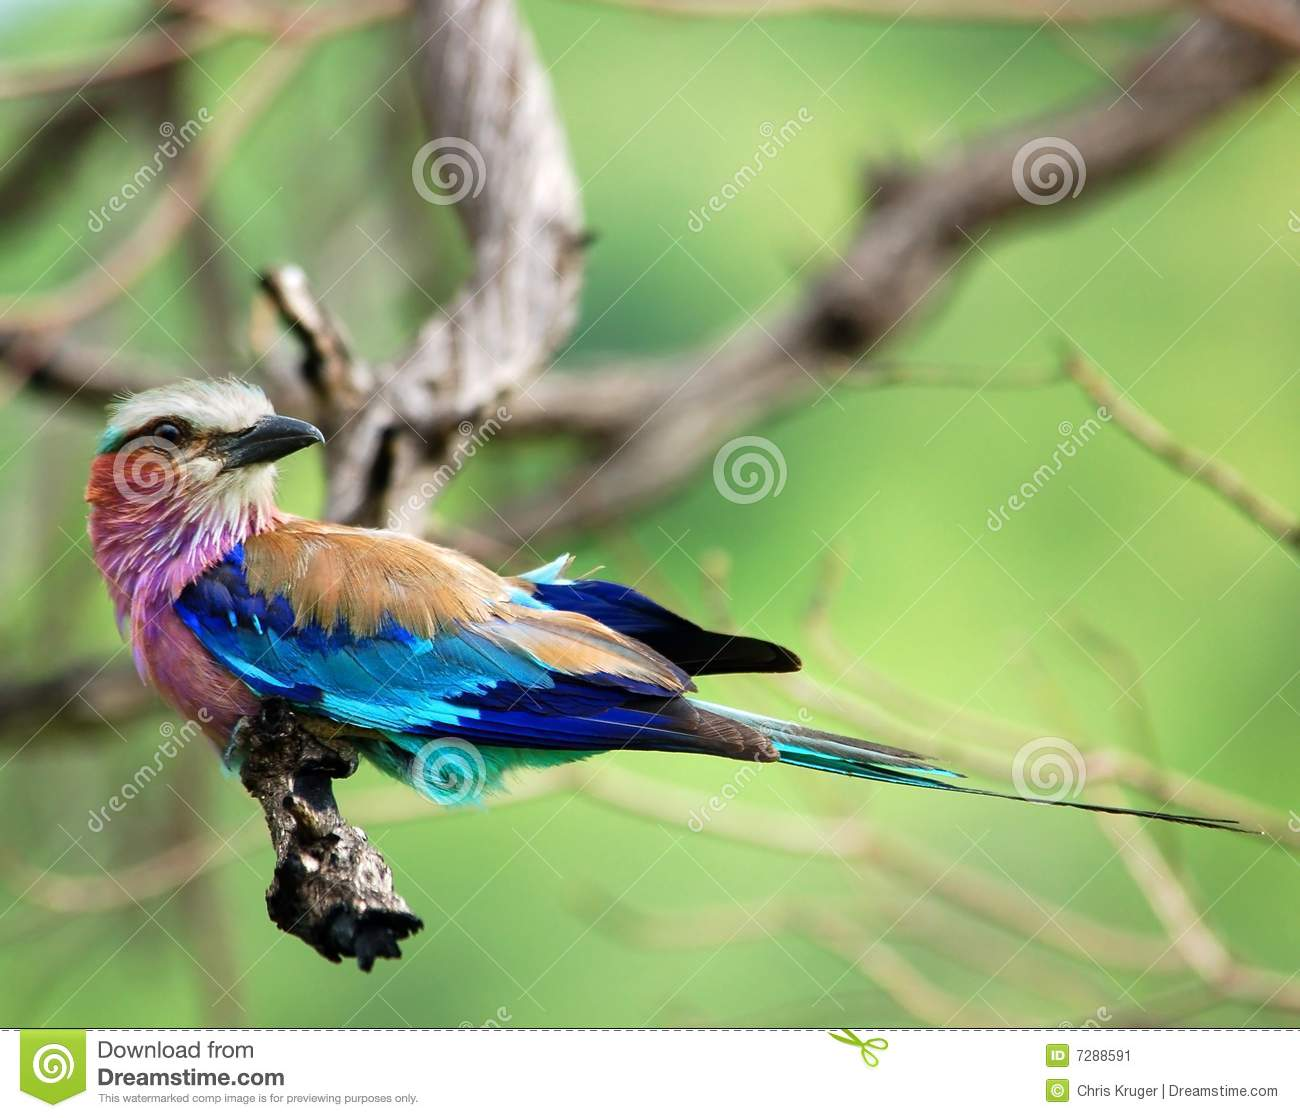 Birds of Africa: Lilacbreasted Roller